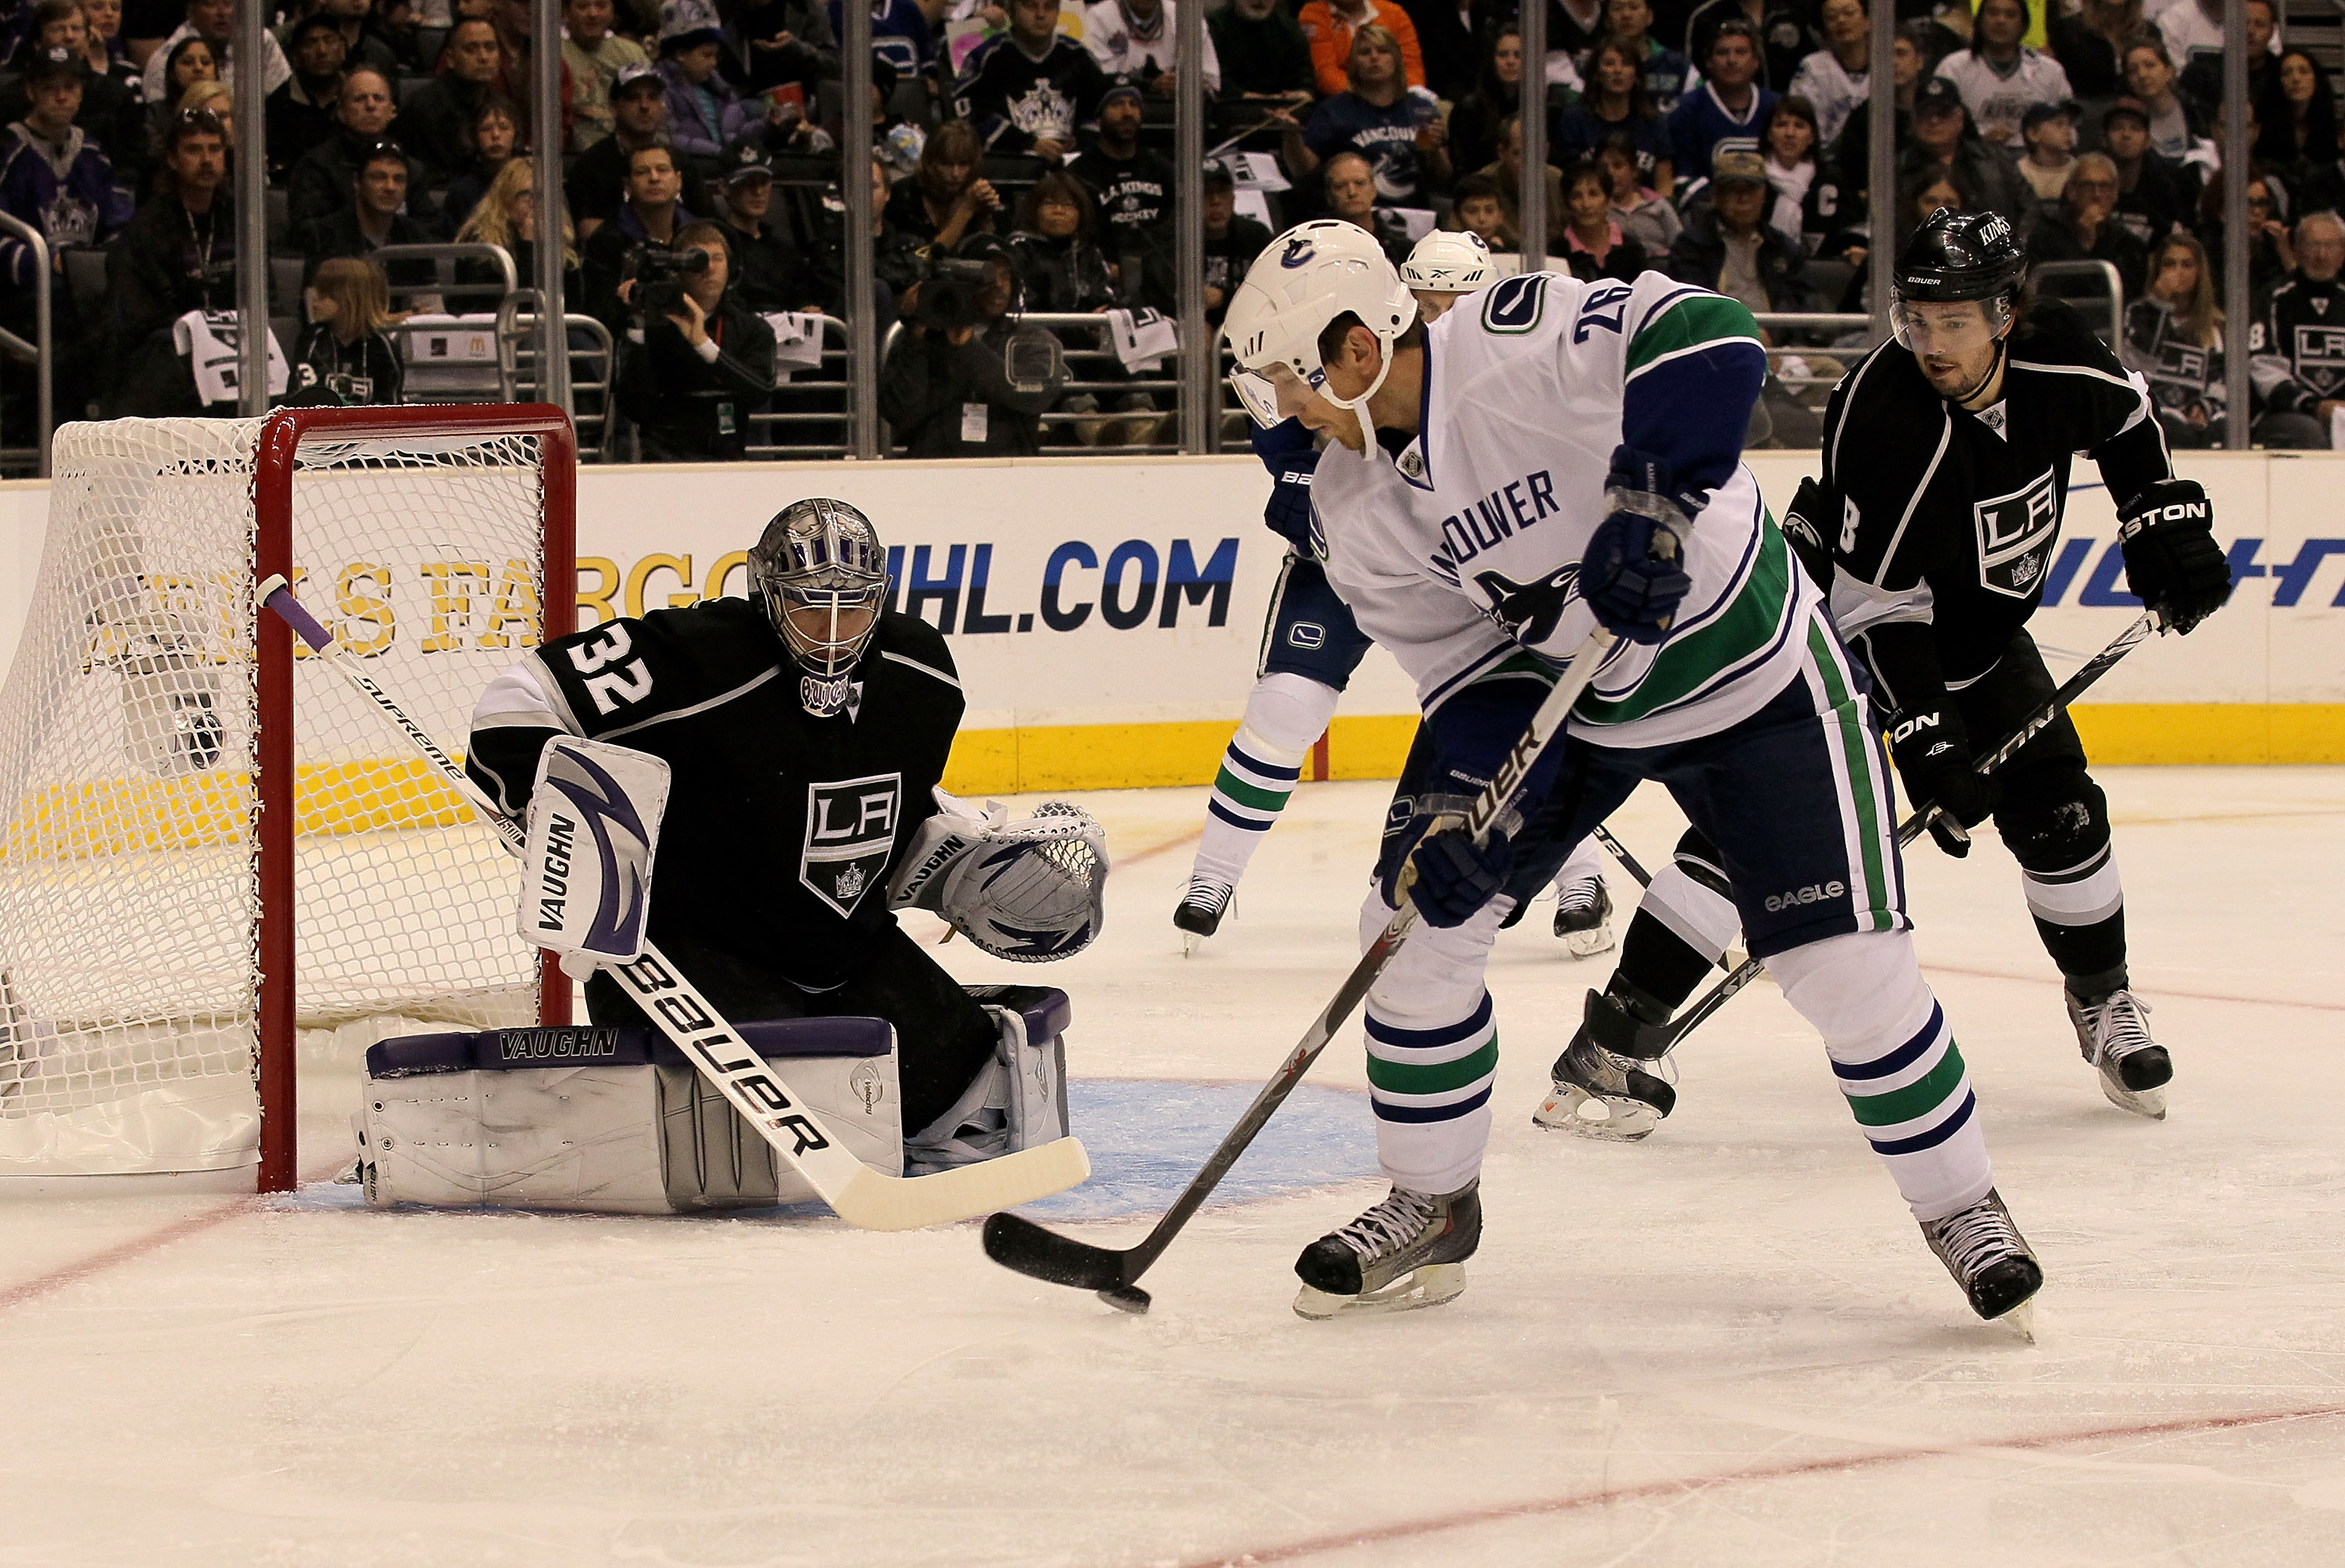 LOS ANGELES - APRIL 25:  Mikael Samuelsson #26 of the Vancouver Canucks handles the puck in front of goaltender Jonathan Quick #32 of the Los Angeles Kings during Game Six of the Western Conference Quarterfinals of the 2010 NHL Stanley Cup Playoffs on Apr